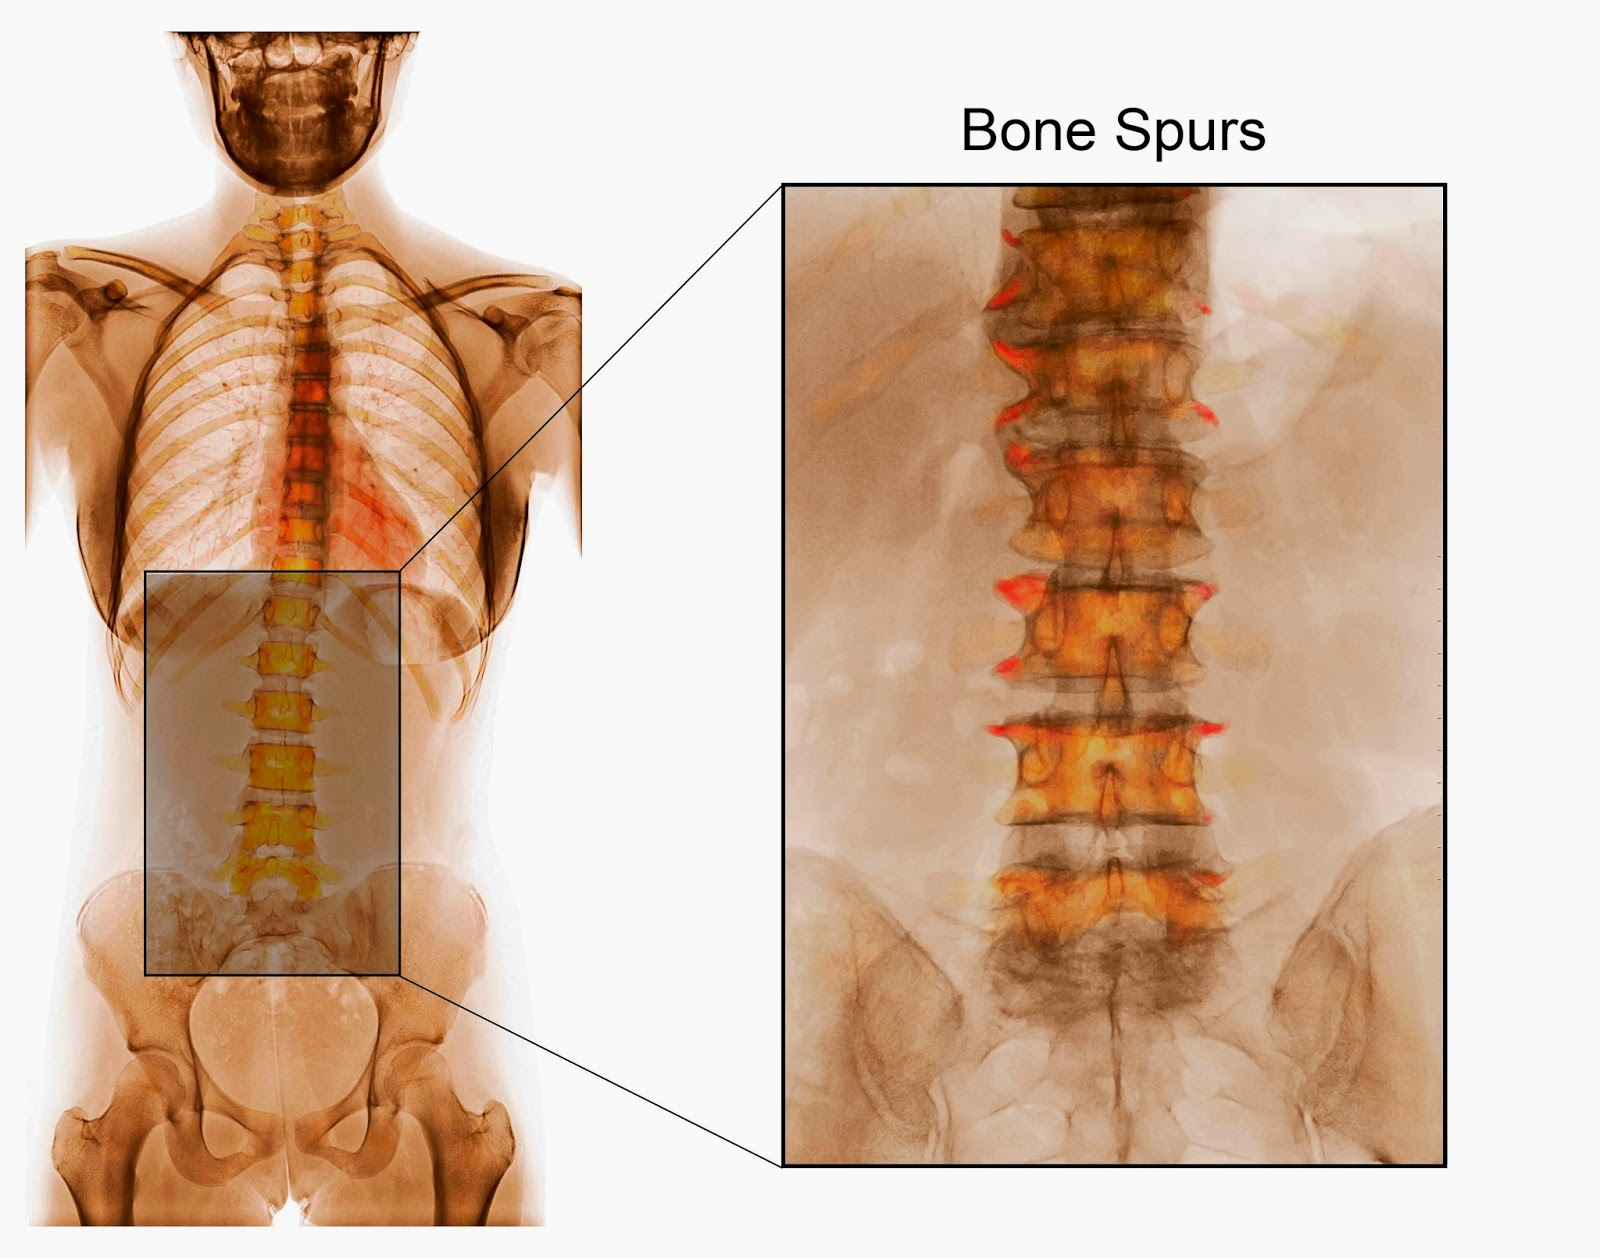 AP Color X-Ray showing Degenerative Disc Disease (DDD) and Bone Spurs